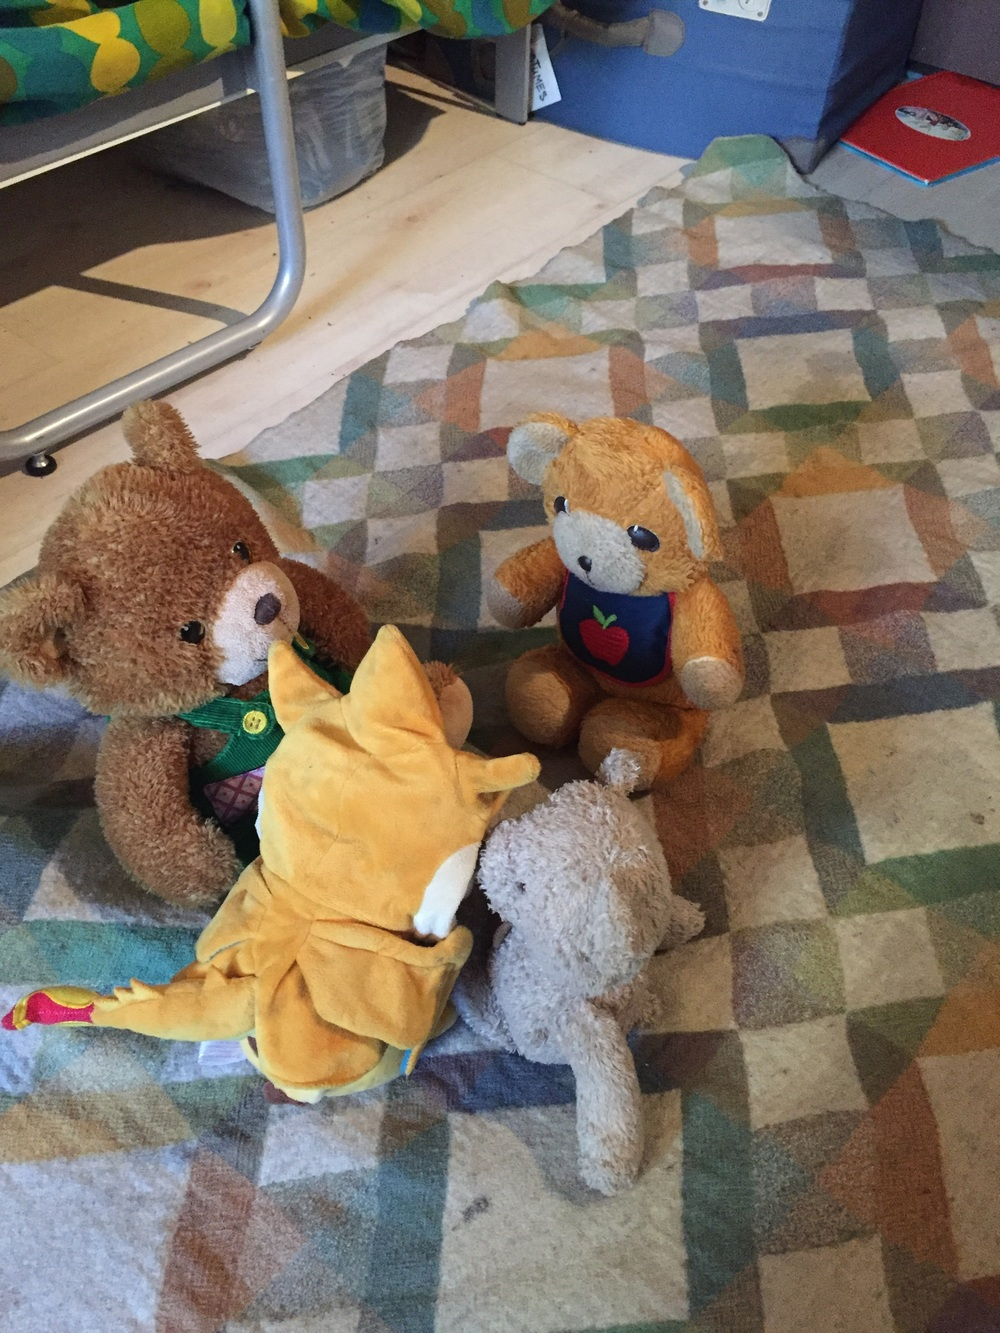 These guys gathered on the blanket for dramatic play